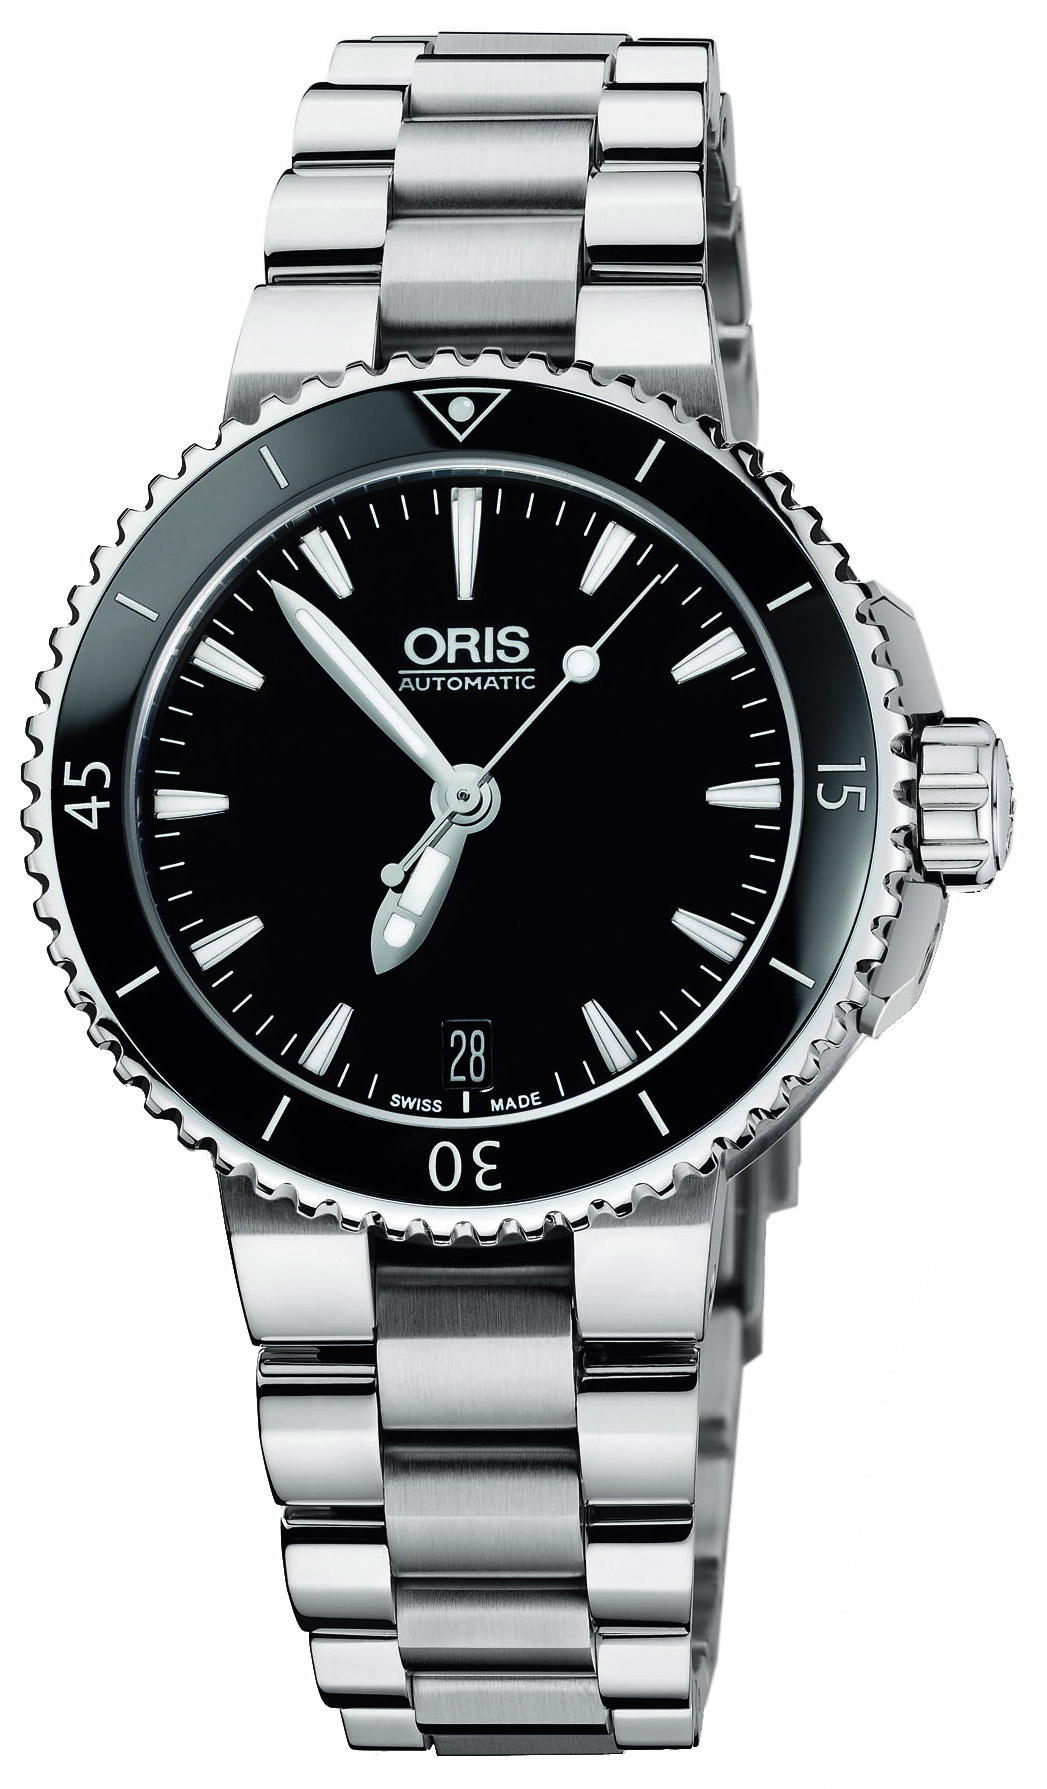 Image of Oris Aquis Date Ladies Watch Model 733.7652.4154.MB